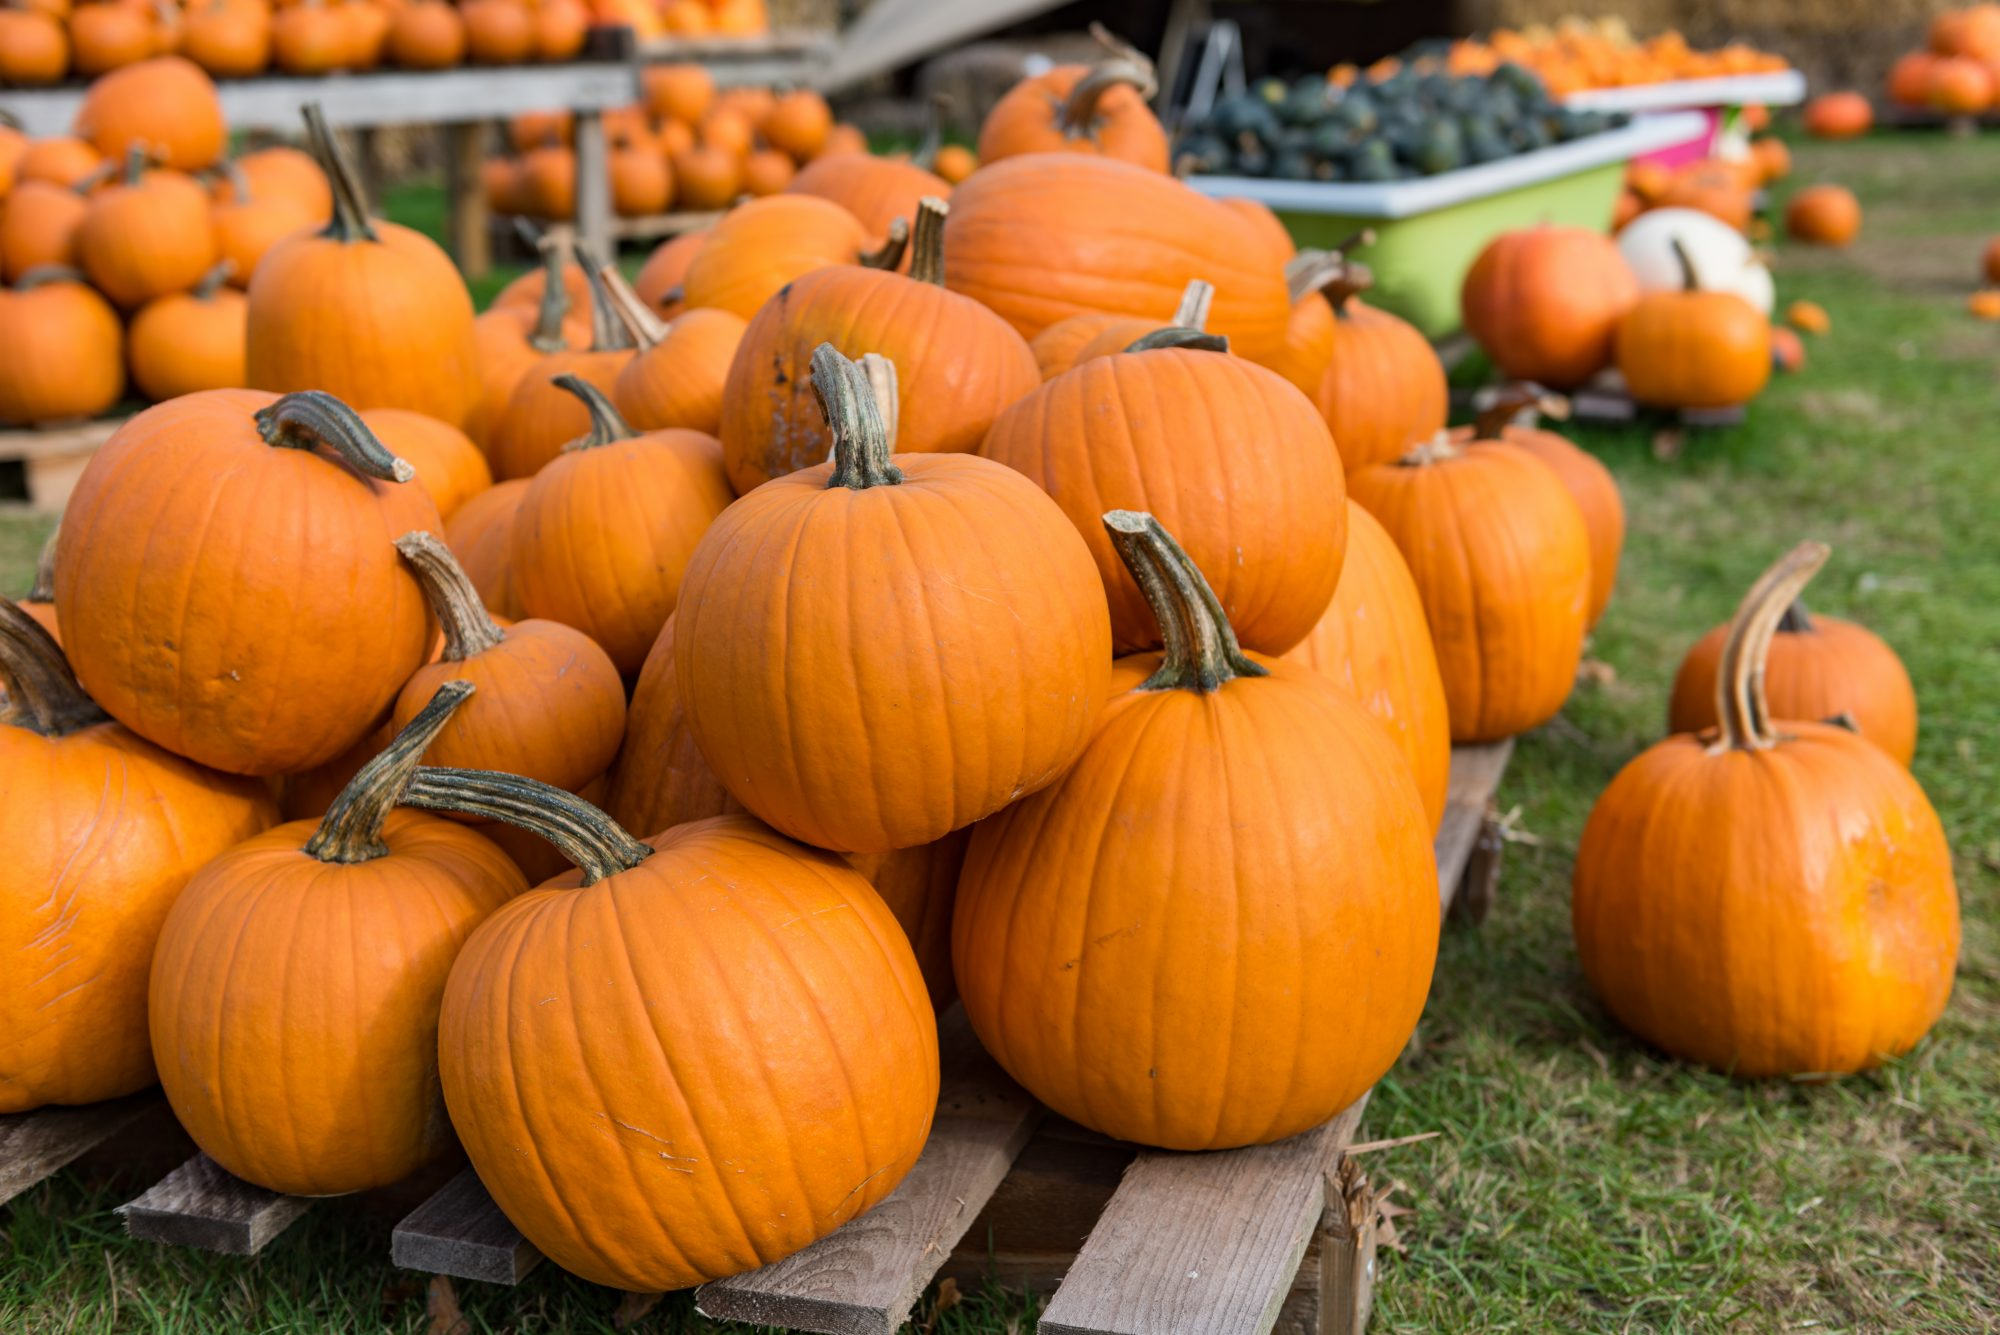 10232019_Getty Pumpkins Image